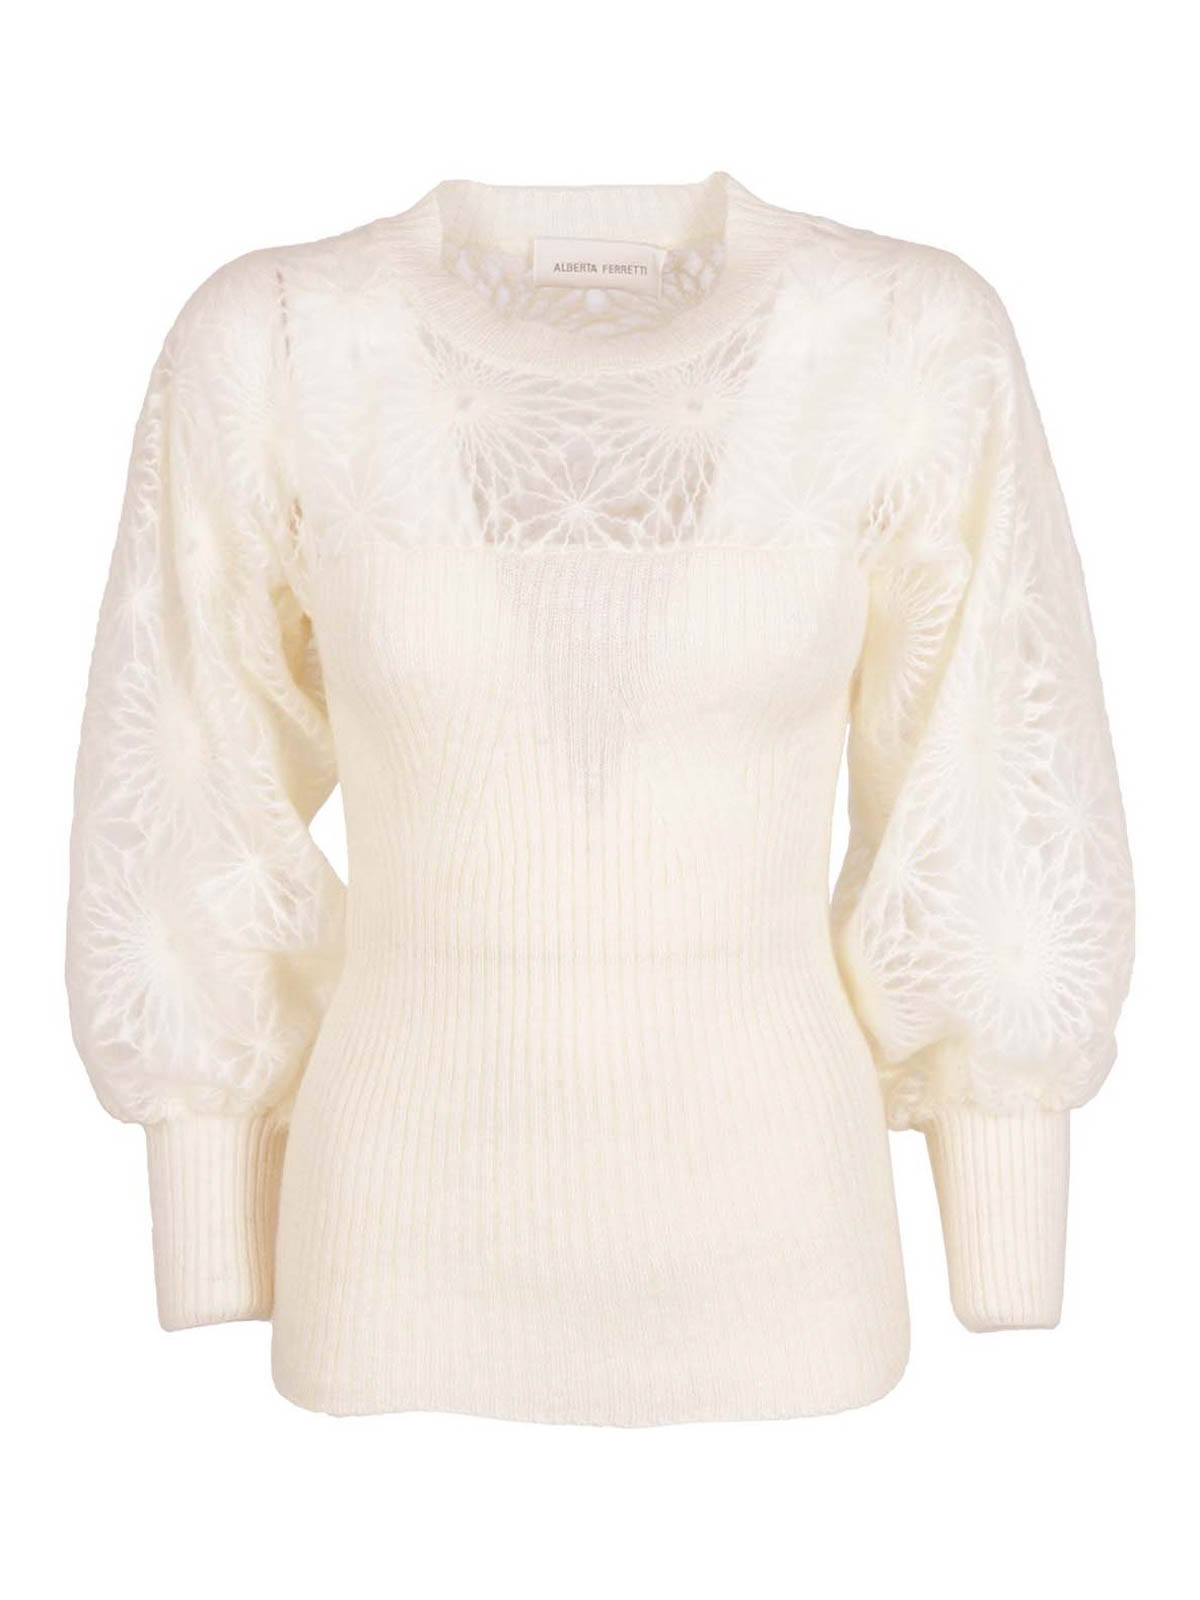 Alberta Ferretti SEE-THROUGH EMBROIDERY CASHMERE JUMPER